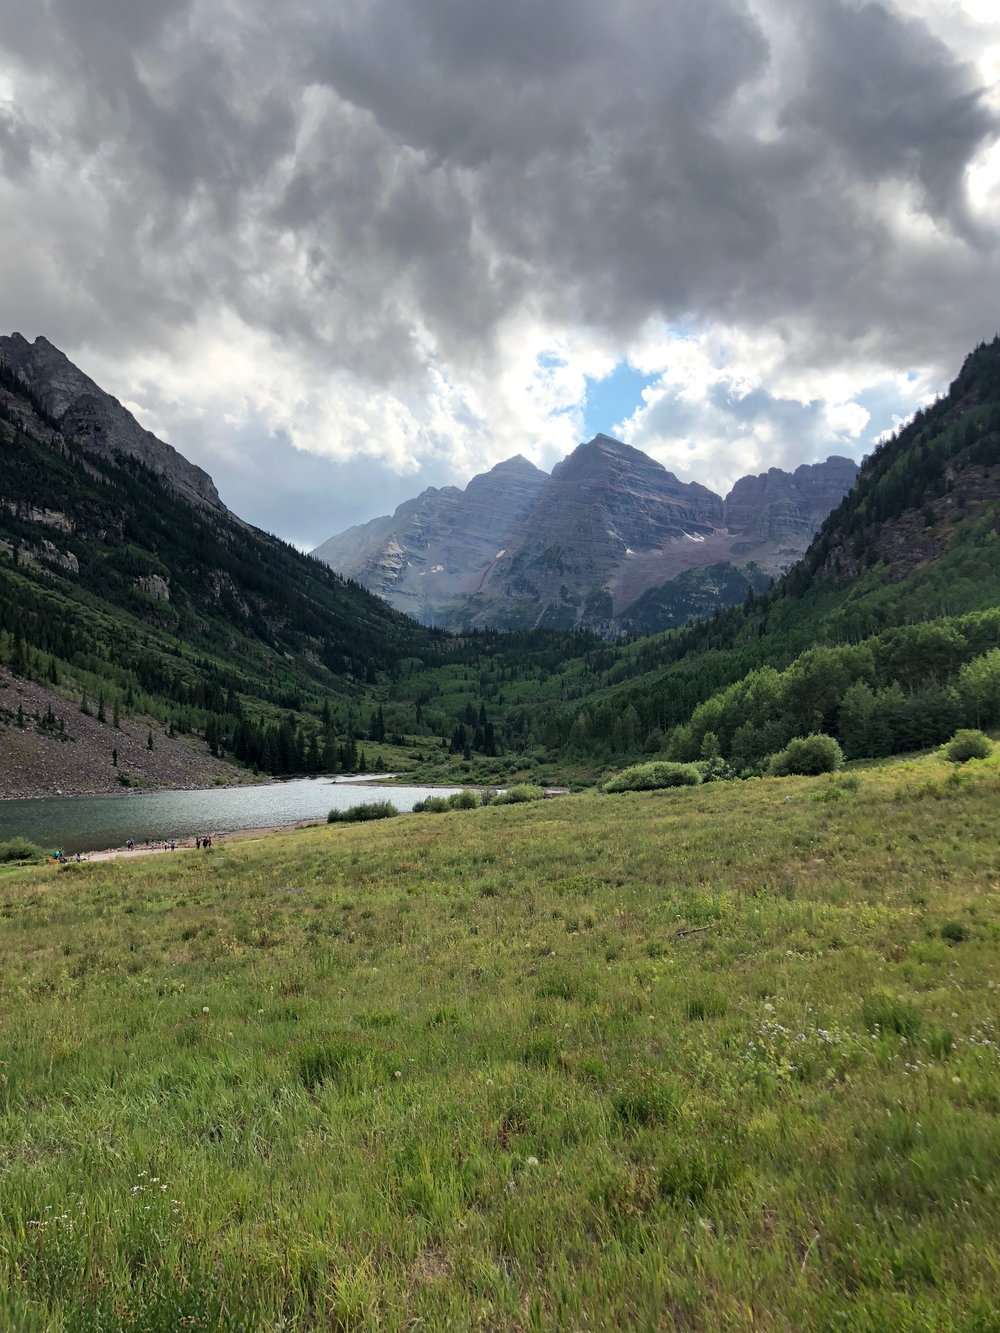 This is the view of Maroon Bells that gets photographed the most! This shot was taken from the walking path just off of the main trailhead where the shuttle drops visitors off. I couldn't not take one as well, it's beautiful.